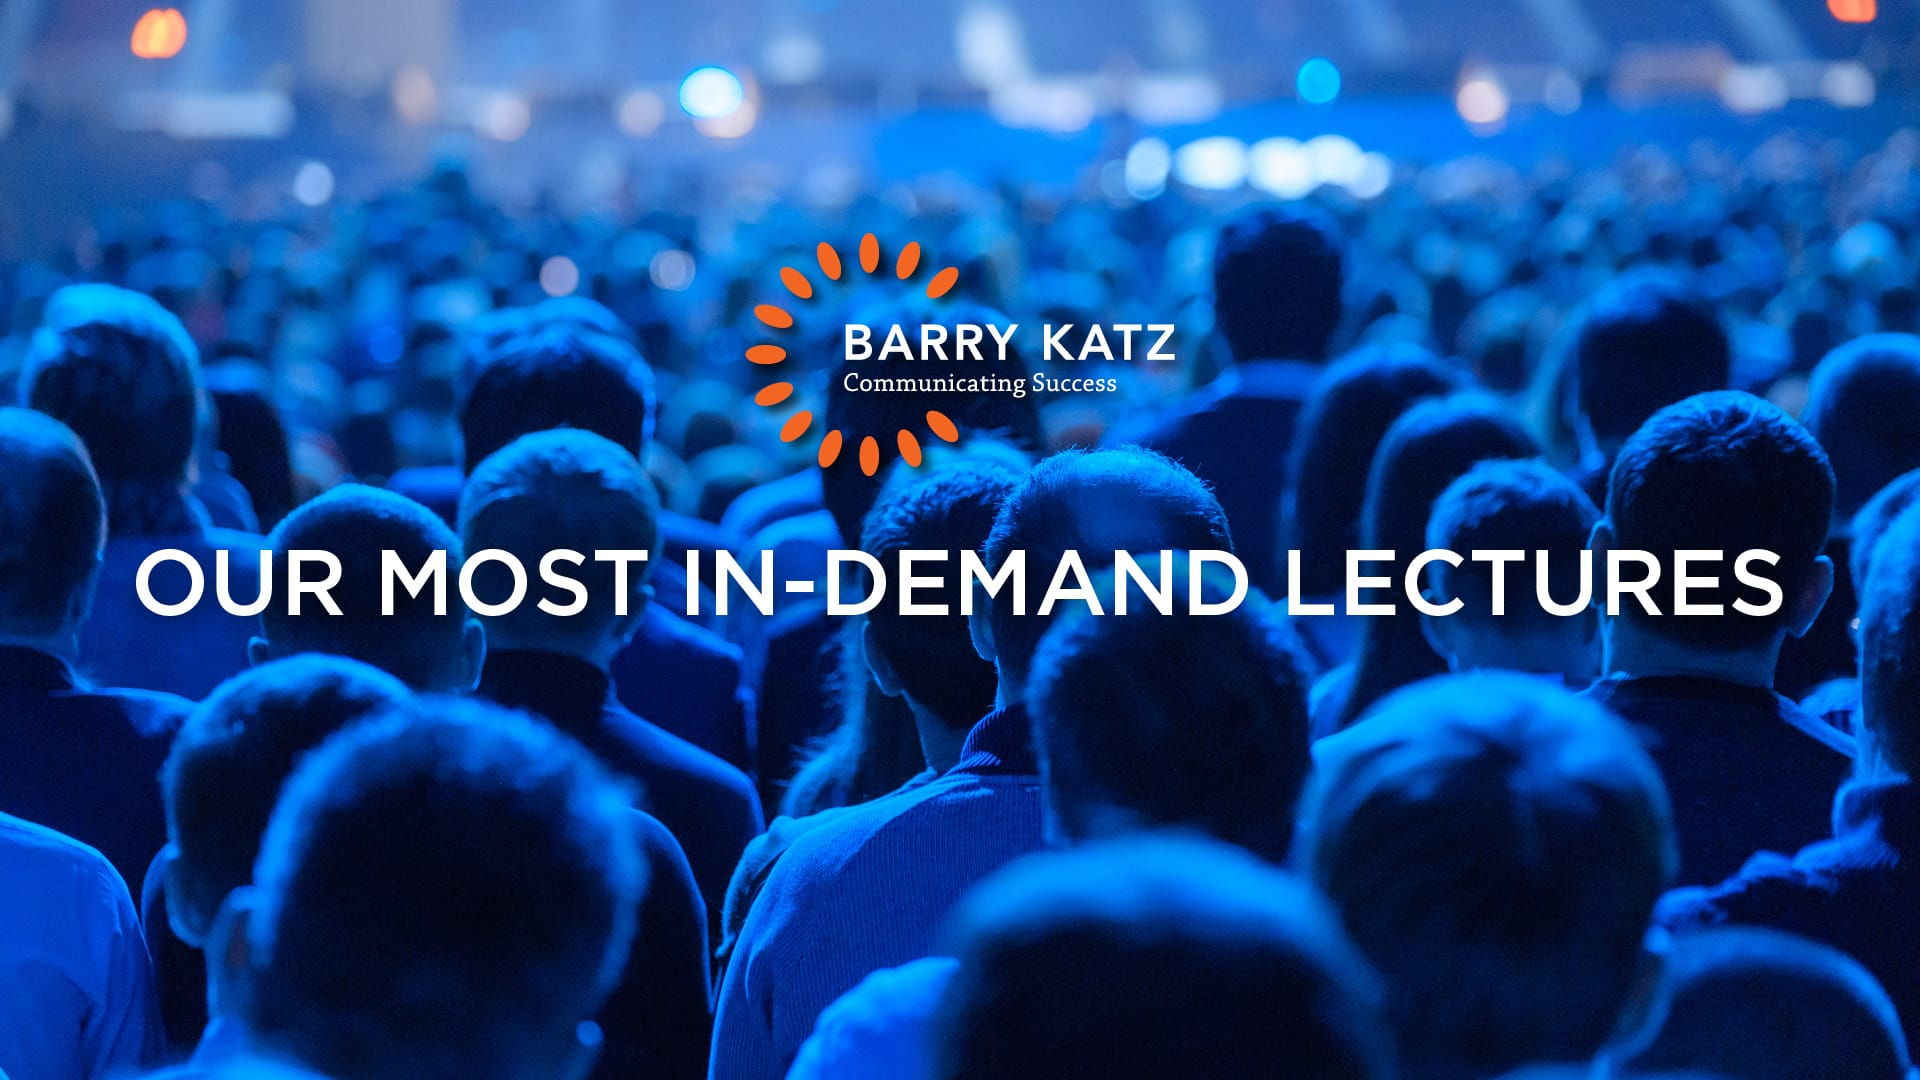 OUR MOST IN-DEMAND LECTURES